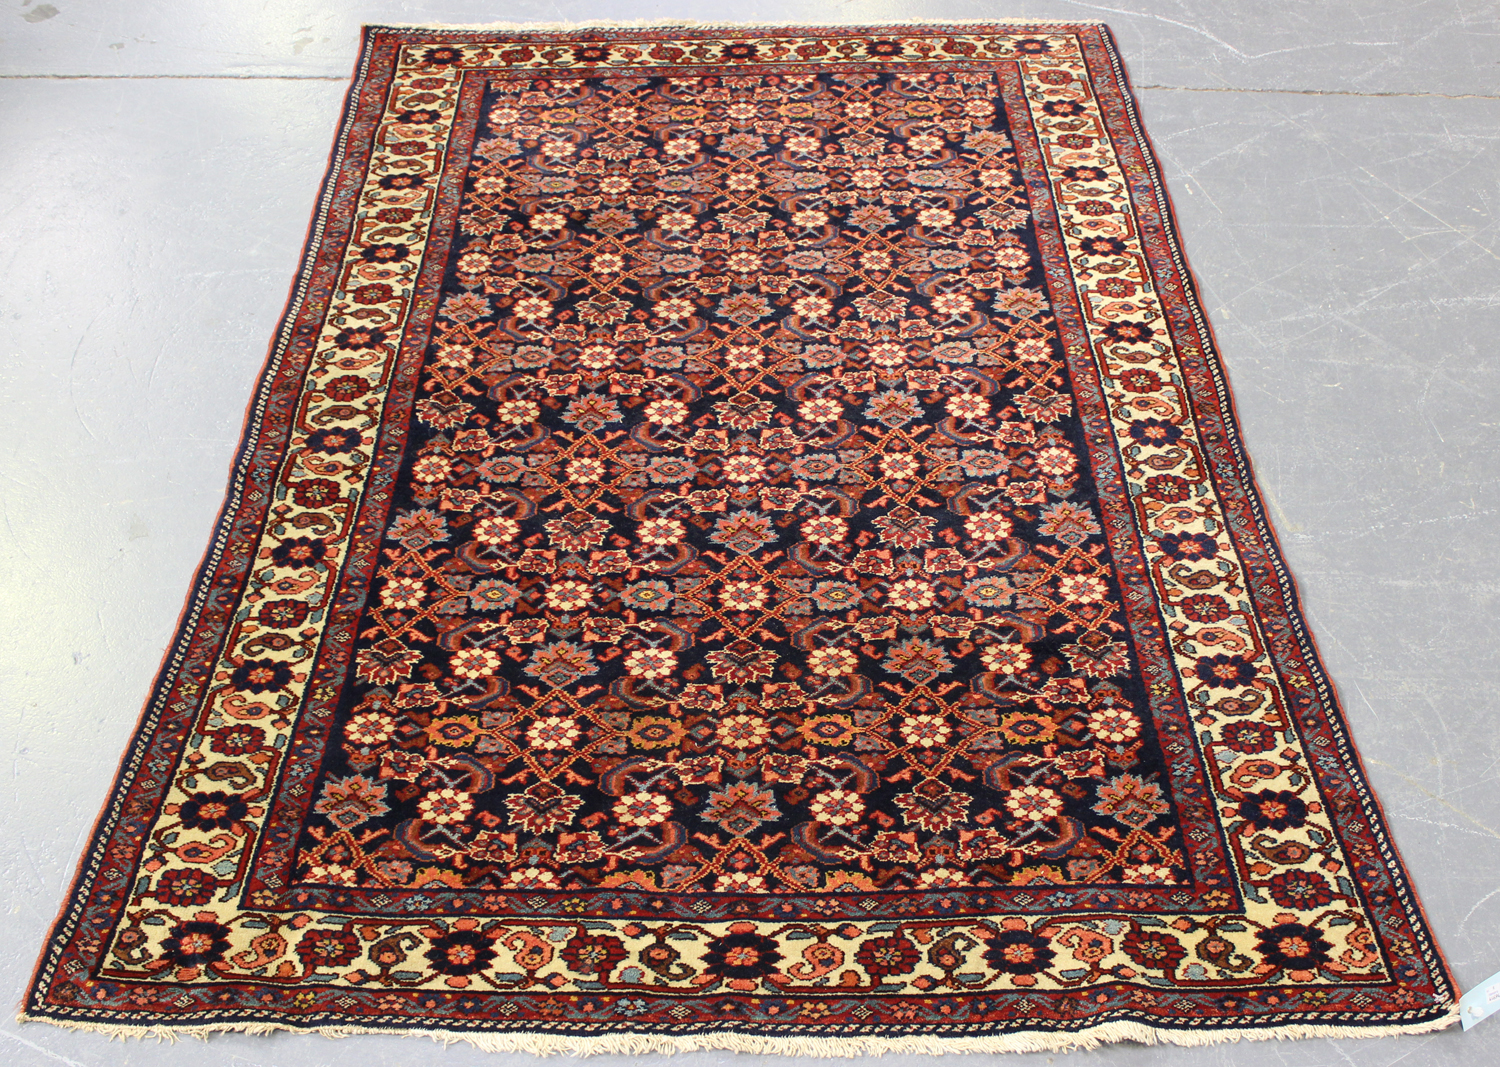 Lot 2902 - A Senneh rug, North-west Persia, early/mid-20th century, the ink blue field with an overall floral